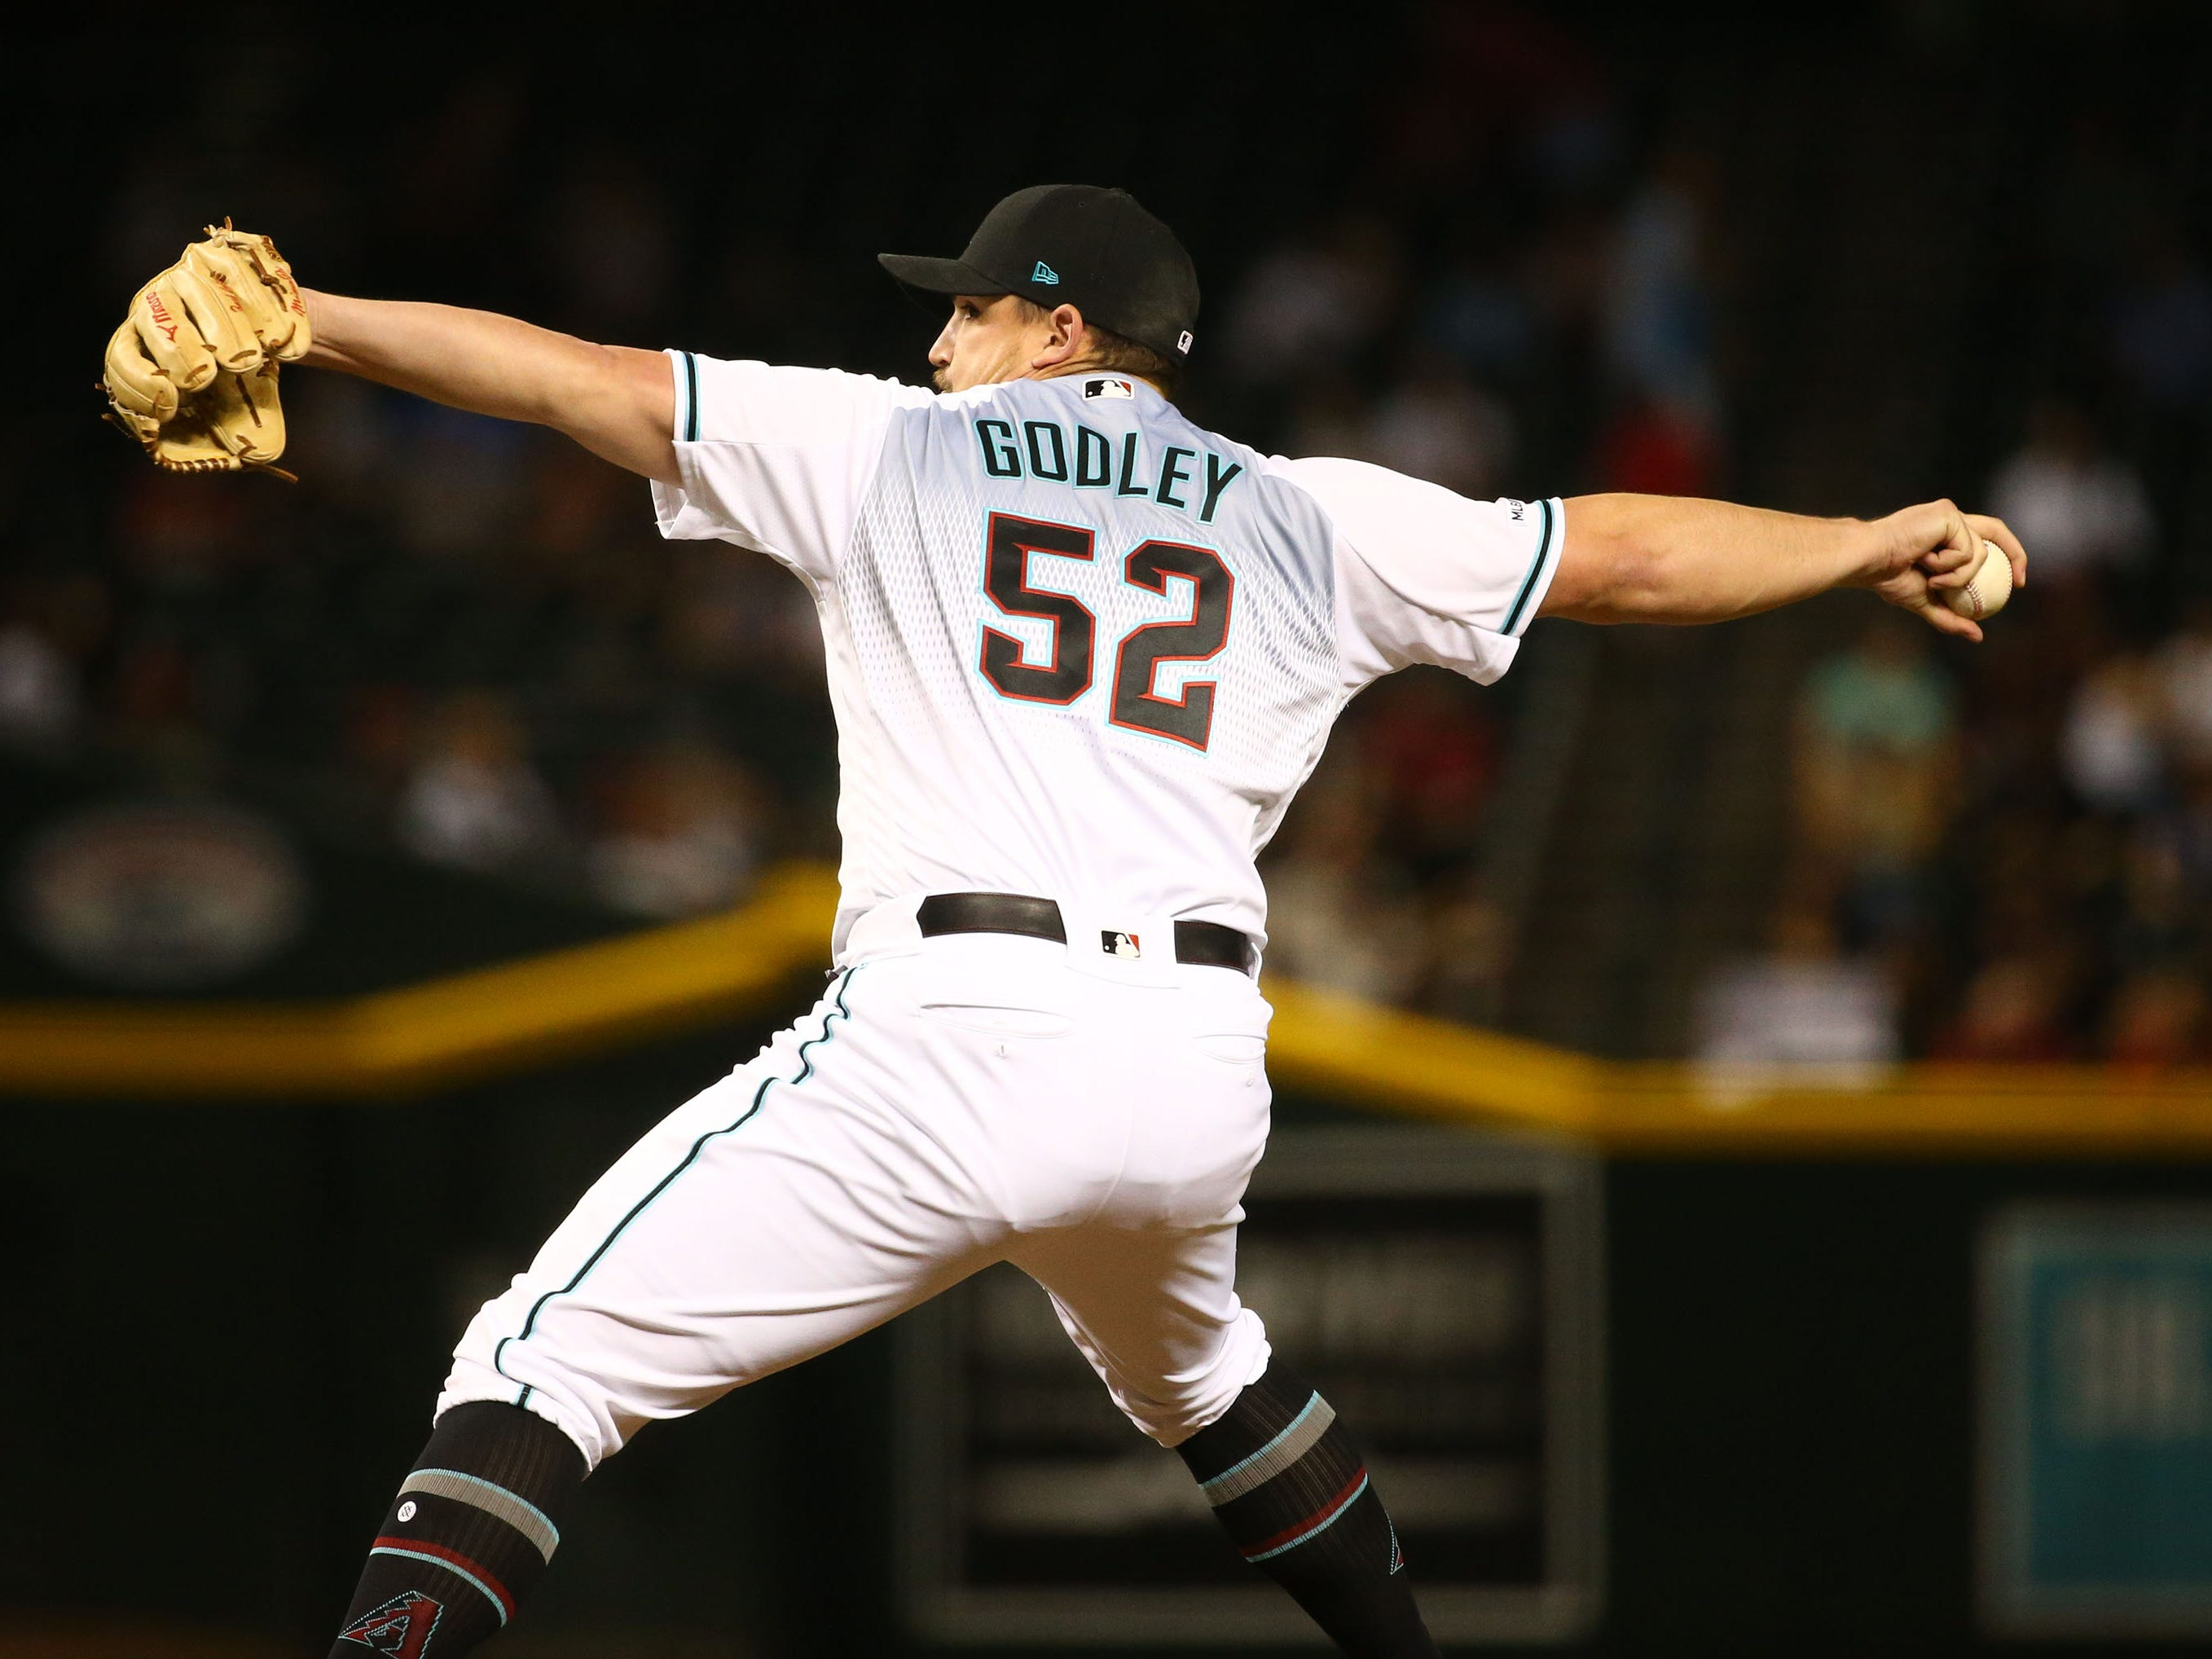 Arizona Diamondbacks pitcher 	Zack Godley throws to the Pittsburgh Pirates in the eighth inning on May. 14, 2019 at Chase Field in Phoenix, Ariz.